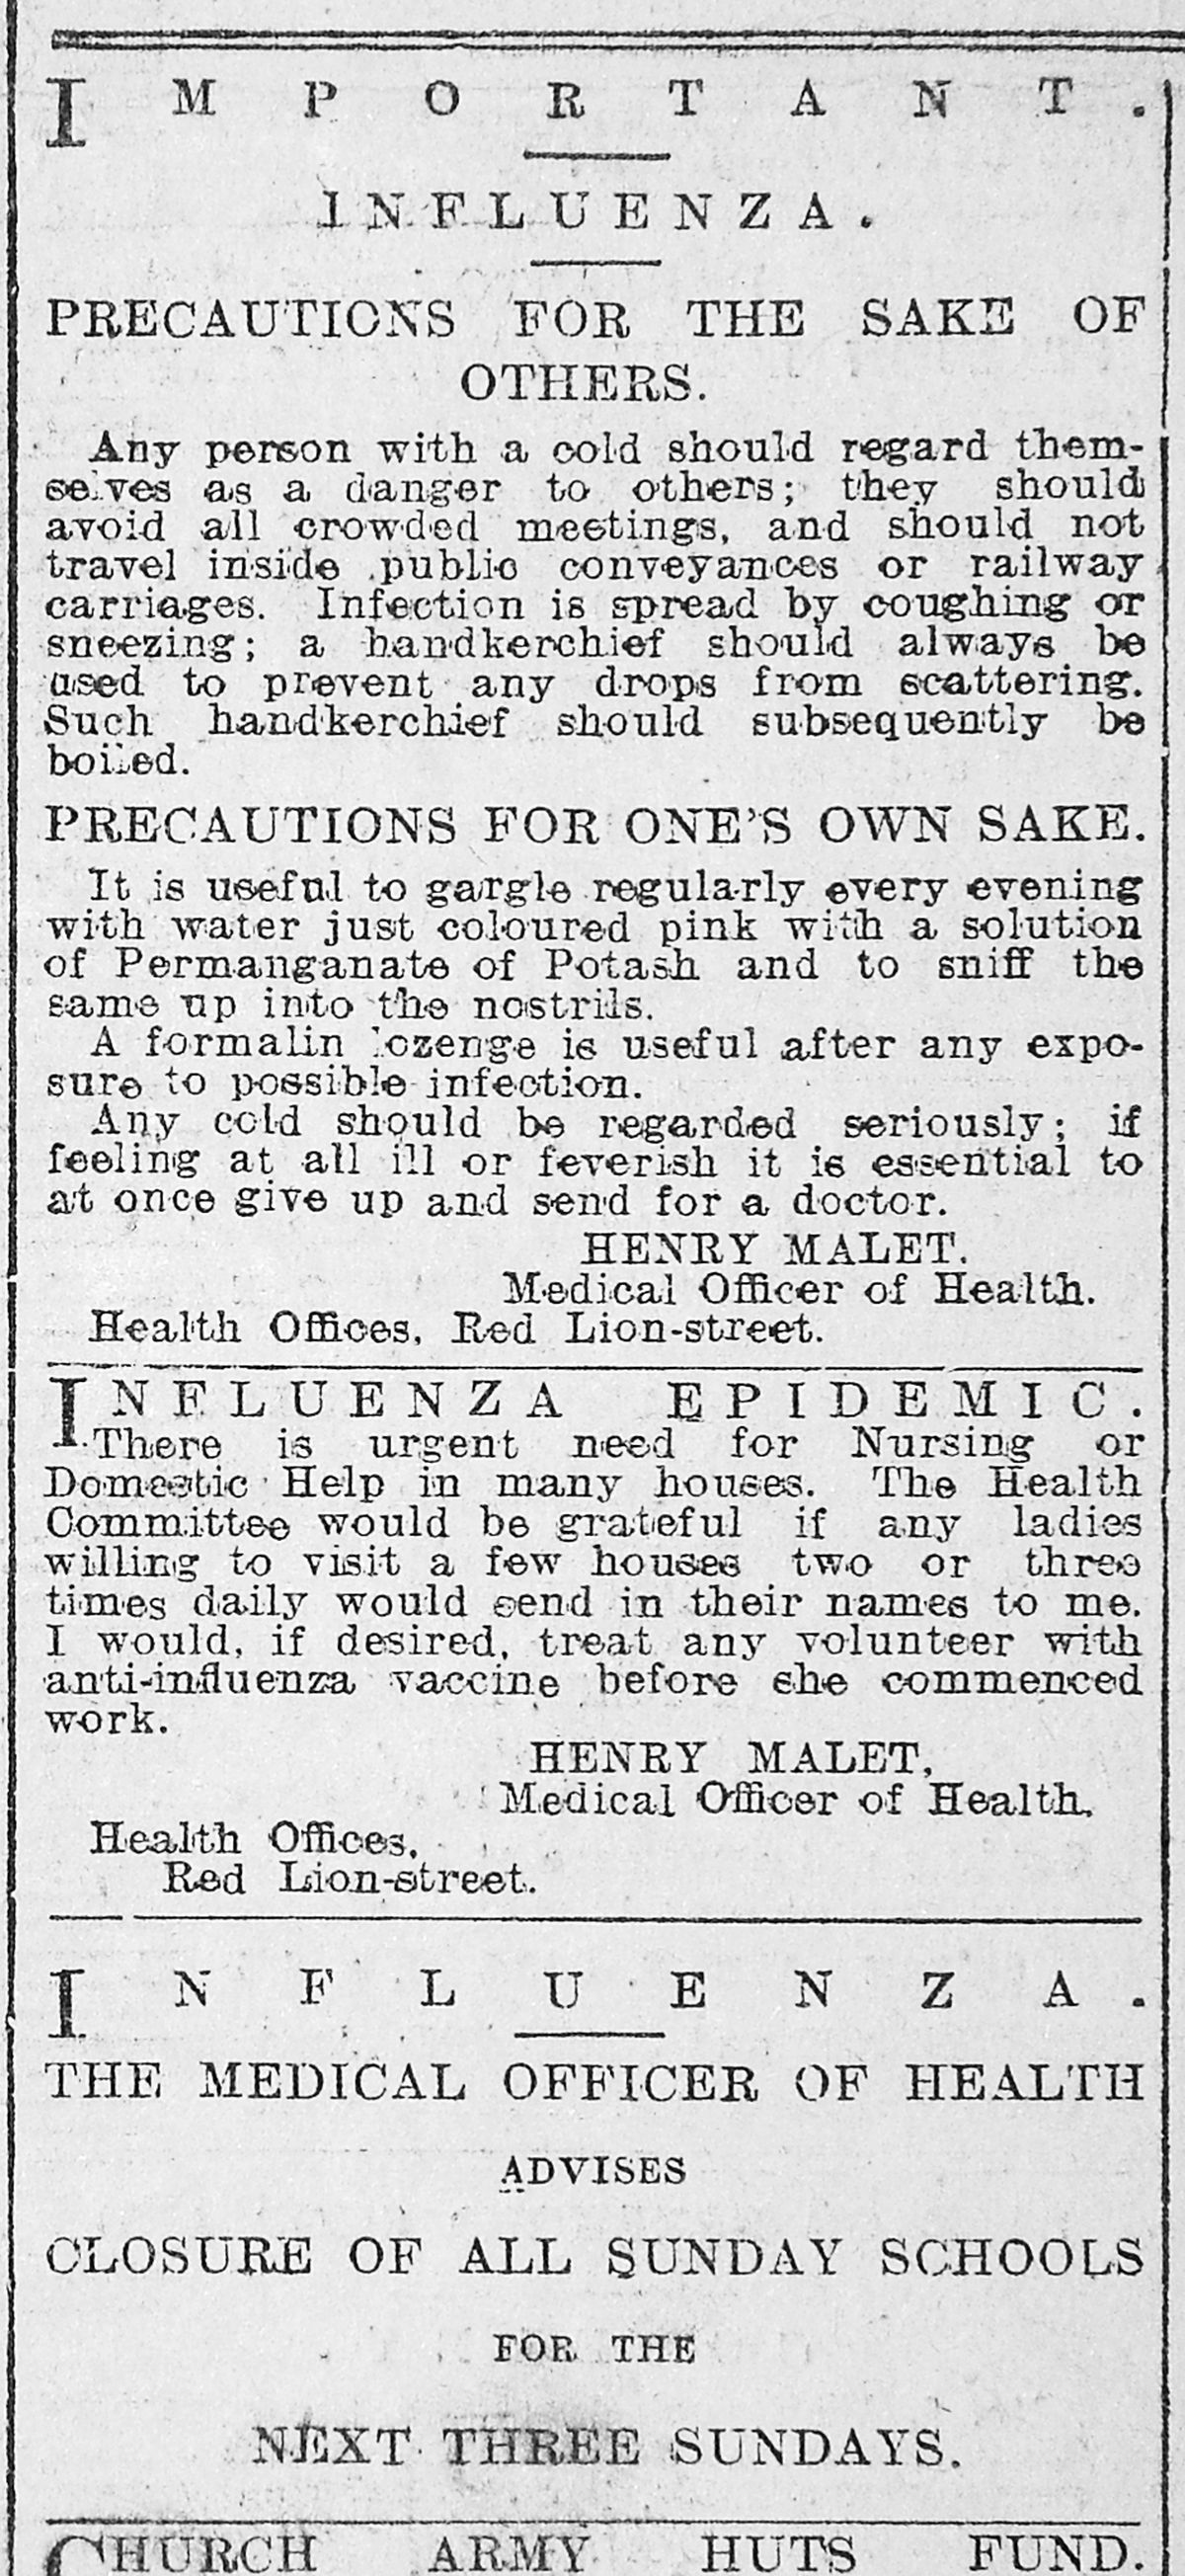 A public notice in 1918 giving advice on how to stop the spread